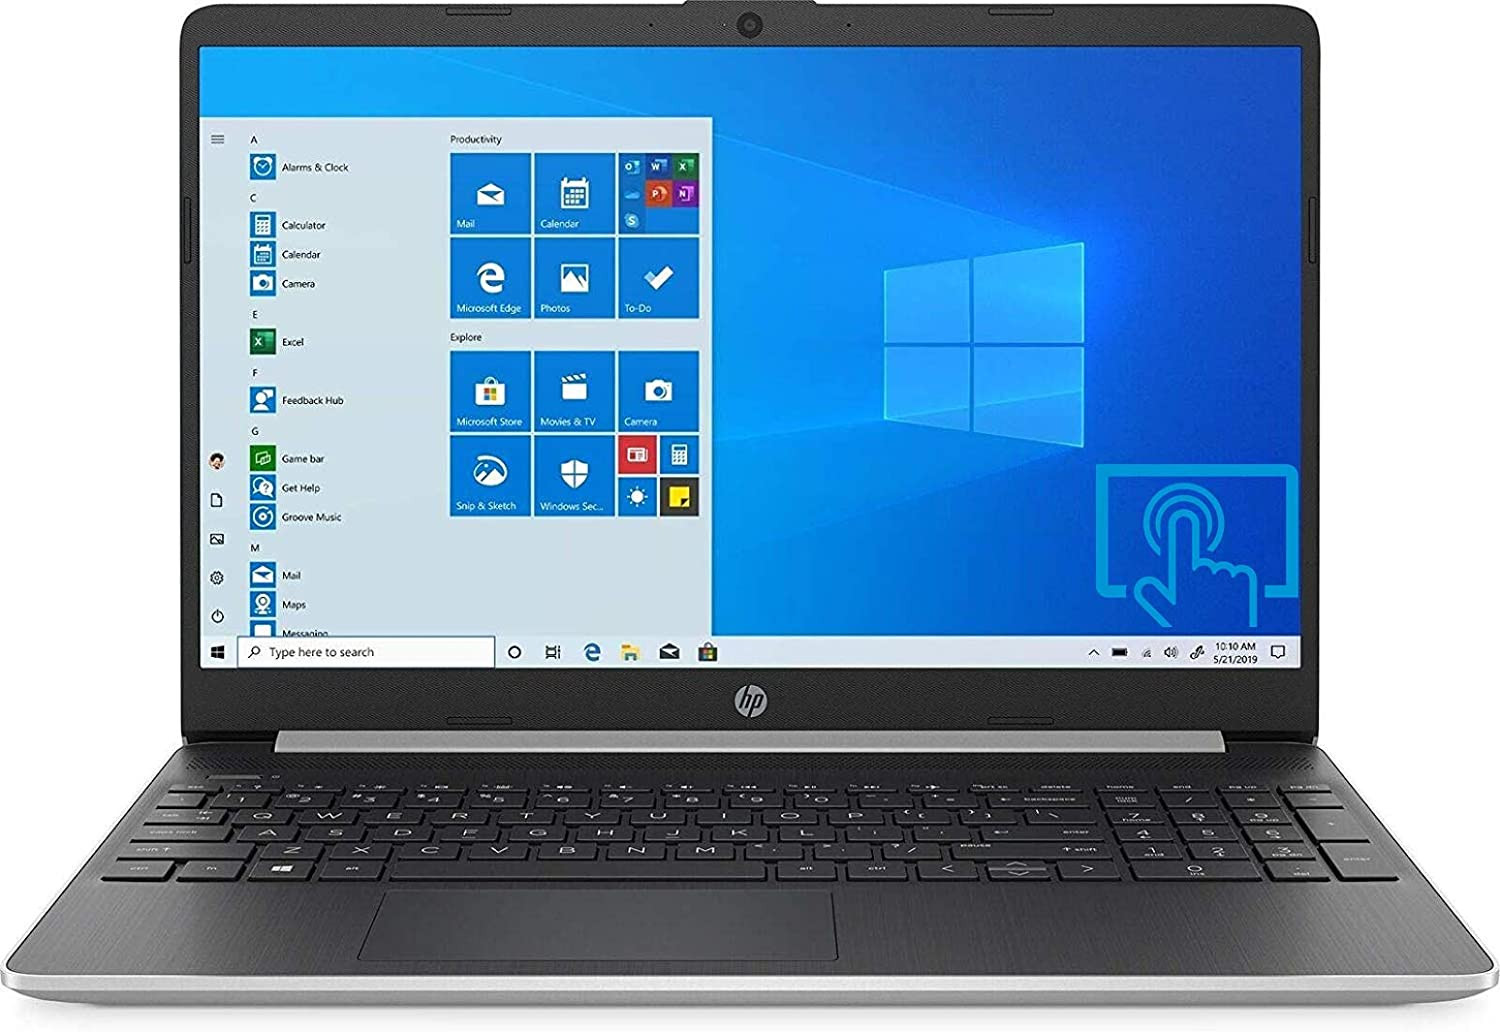 HP 15 Series 15.6-inch HD SVA Touchscreen Laptop, AMD Ryzen 7 3700U (Quad-Core) Up to 4.0GHz, 8GB DDR4, 256GB PCIe NVMe SSD, AMD Radeon RX Vega 10, Webcam, Bluetooth, WiFi, USB 3.1-C, HDMI, Windows 10